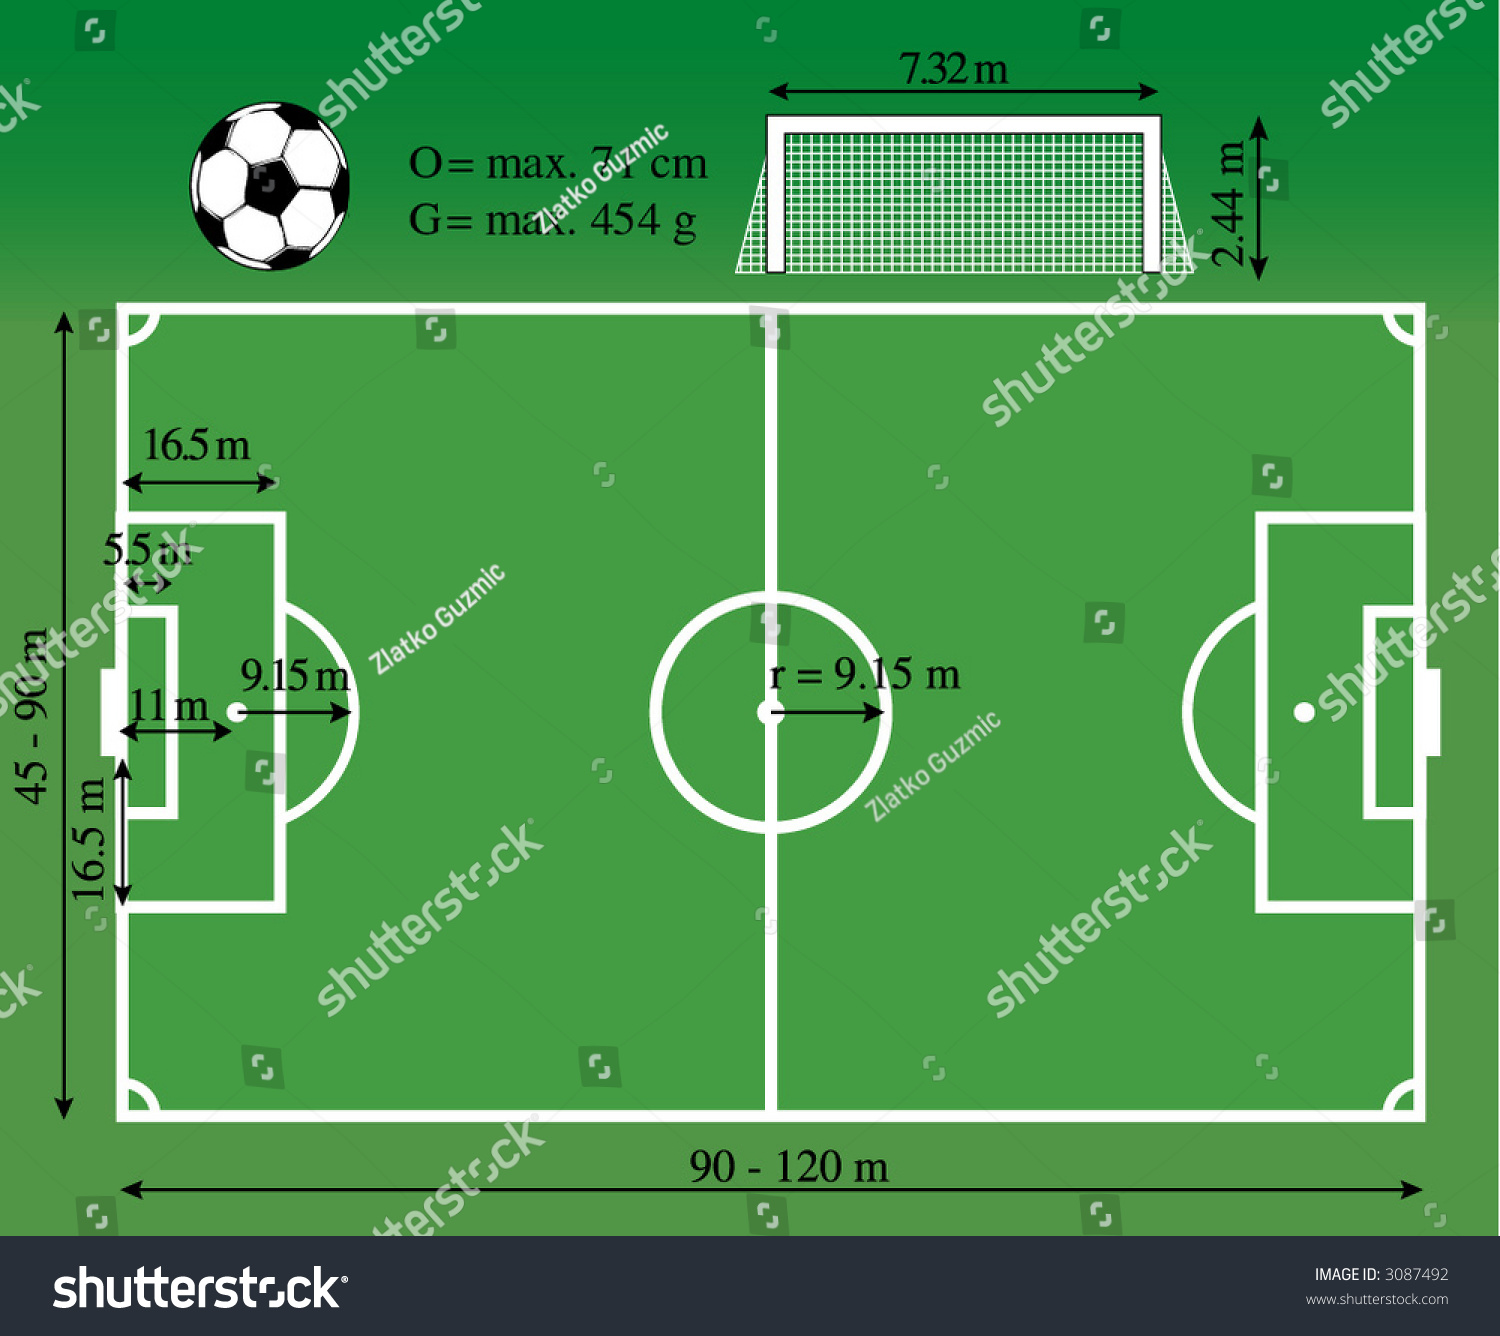 diagram of football ground with measurements car battery isolator switch wiring dimensions the soccer playground stock vector 3087492